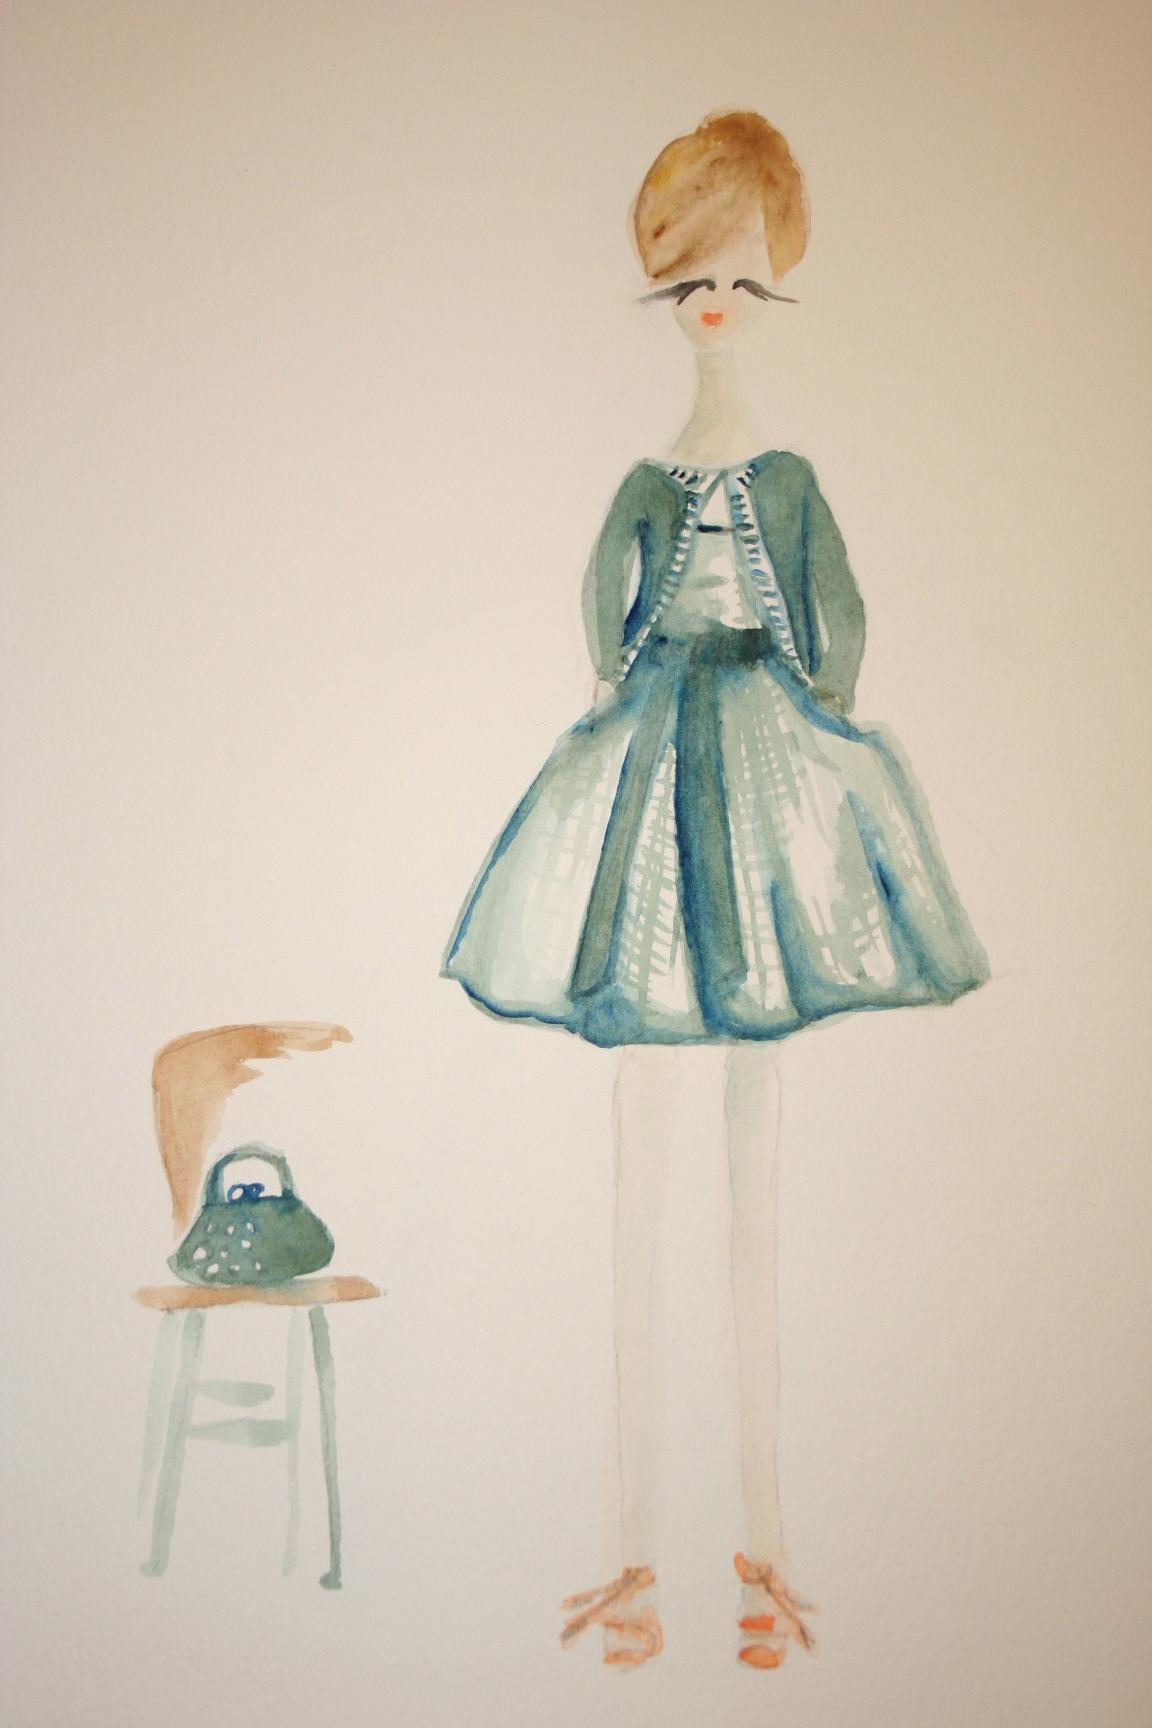 Watercolors - Modern mix of vintage glamour. - image 2 - student project